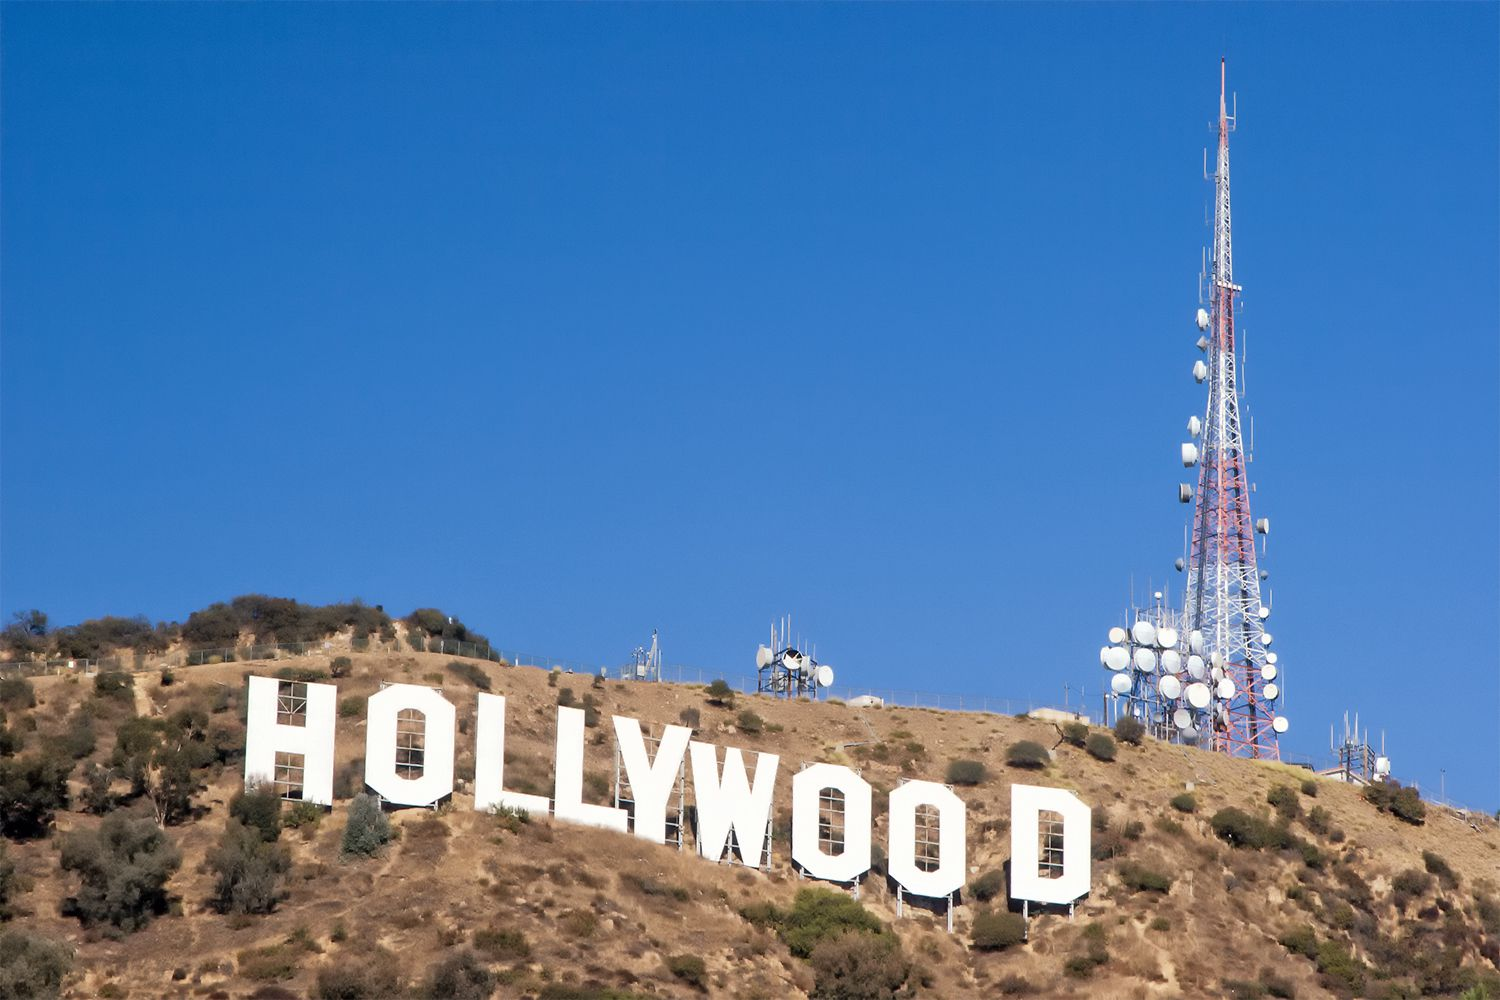 The Hollywood Sign: Where to View It and Hike to It